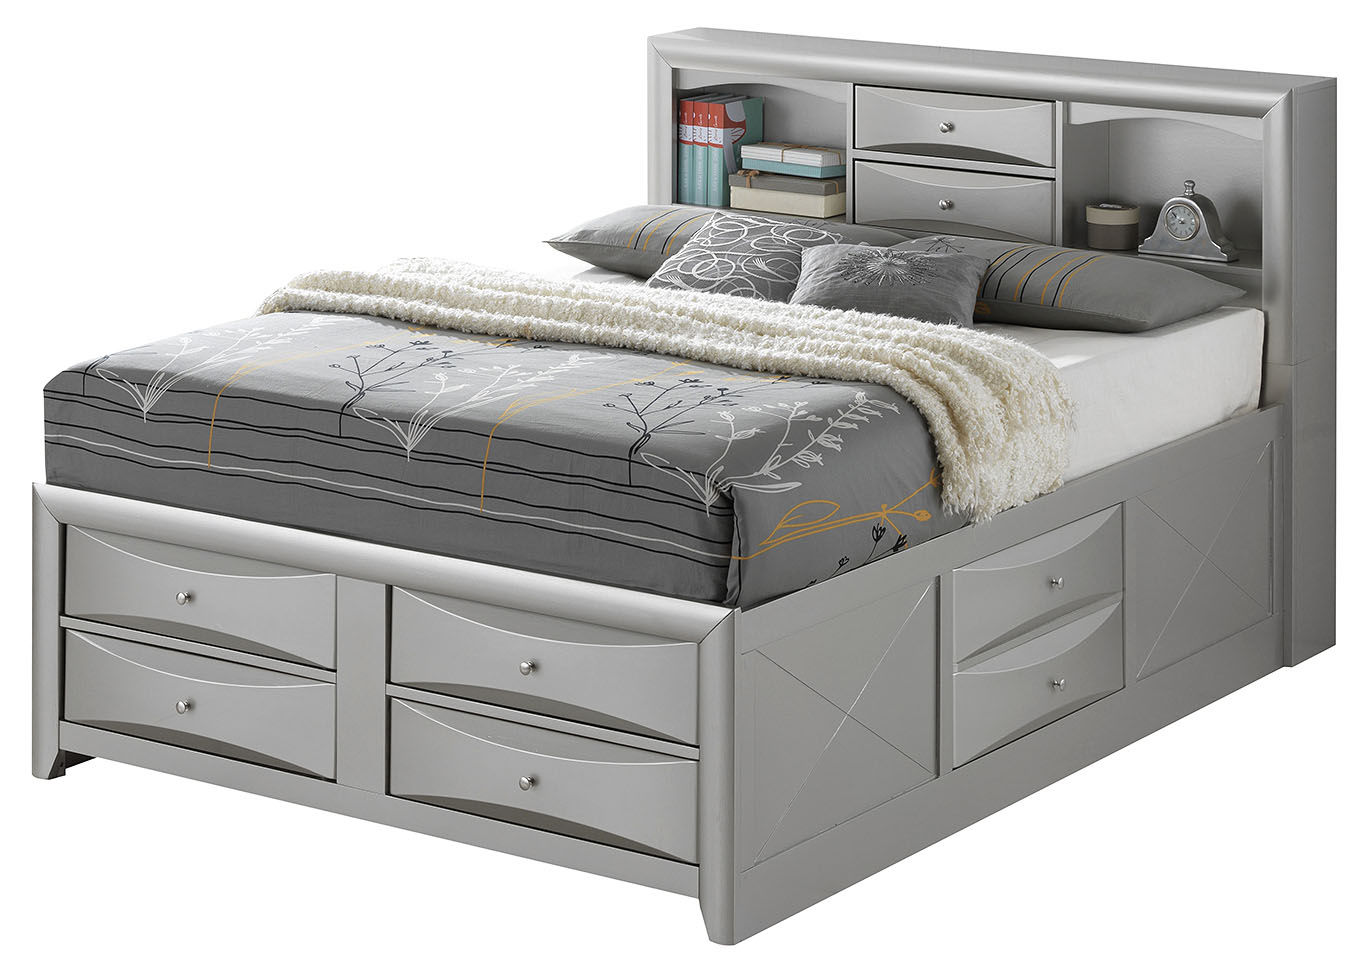 Gray 6 Drawer Full Storage Bed,Glory Furniture